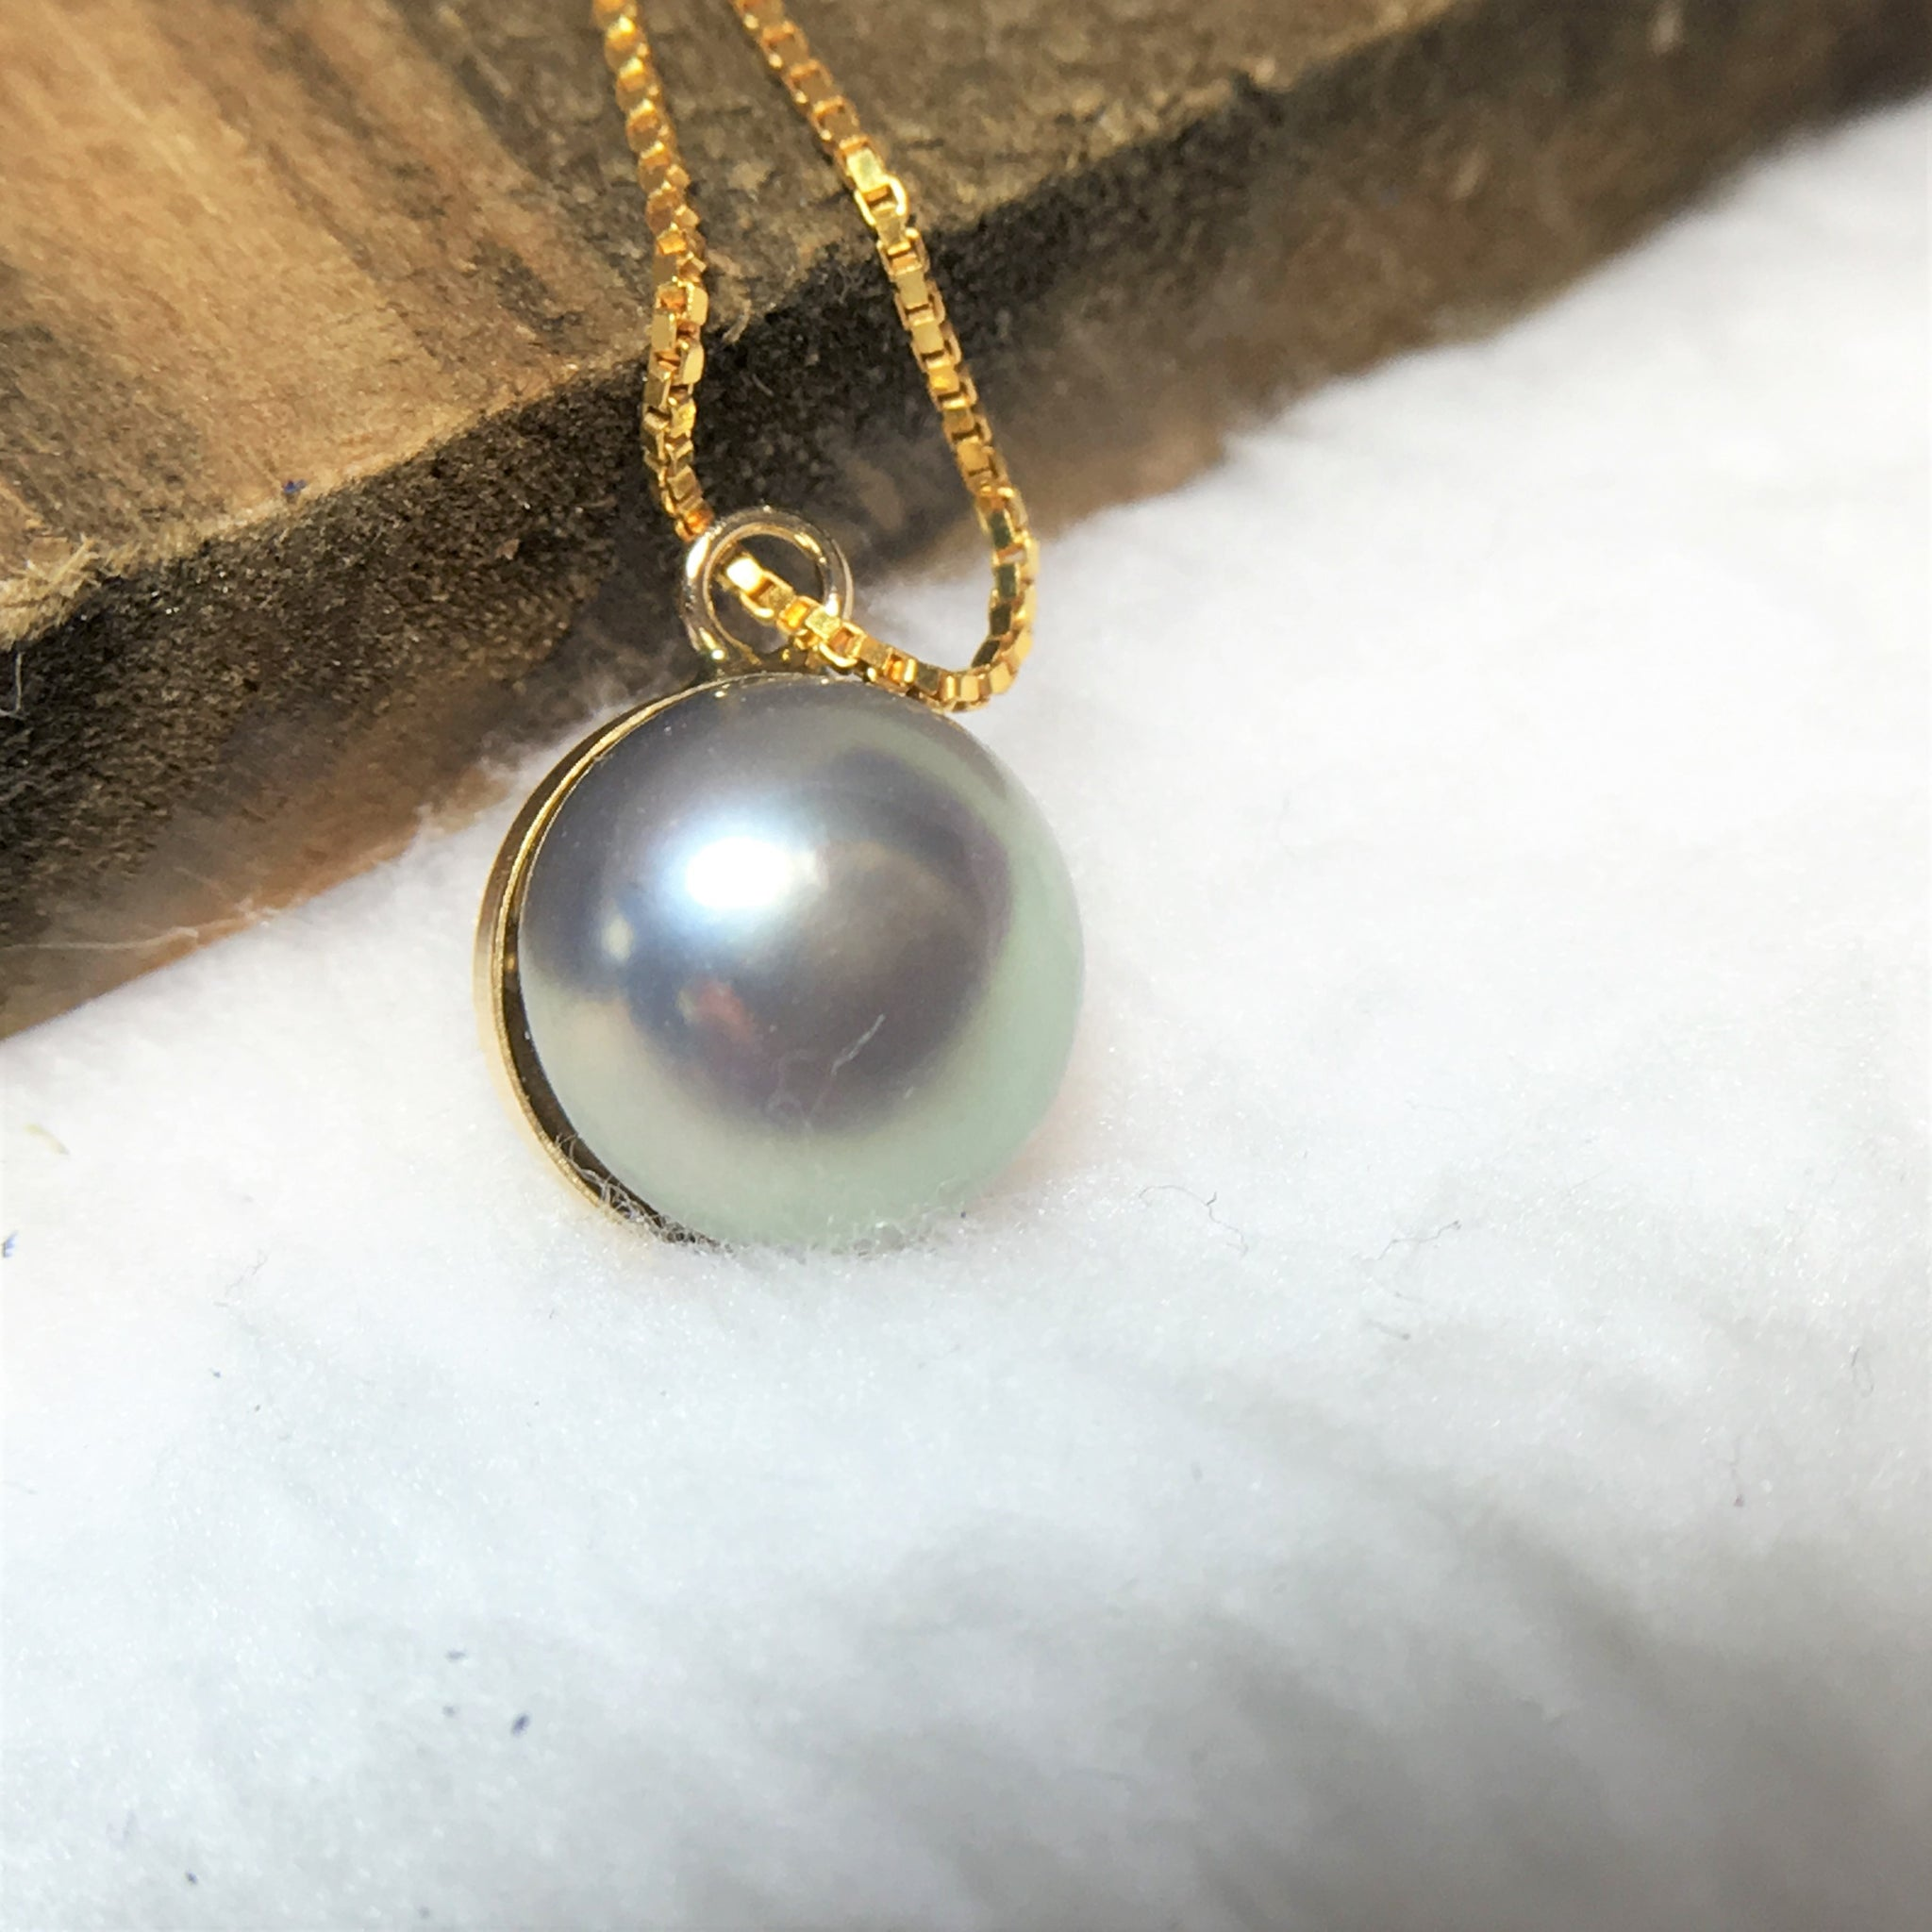 Single Pearl Pendant Necklace for Women in 14Kt Gold Filled Chain